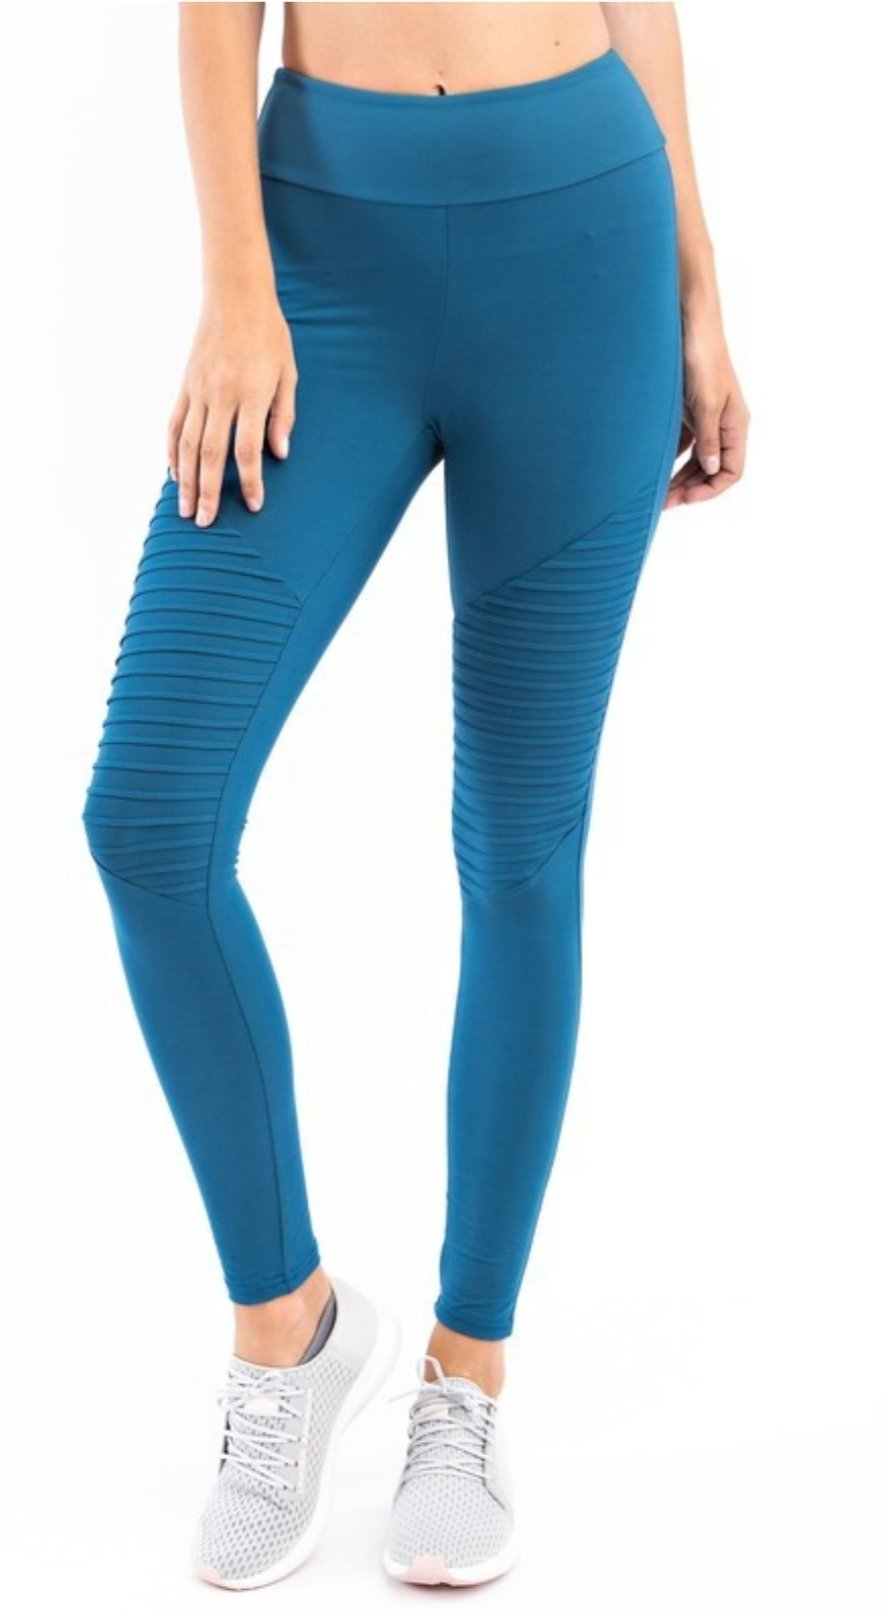 Best selling moto leggings in teal